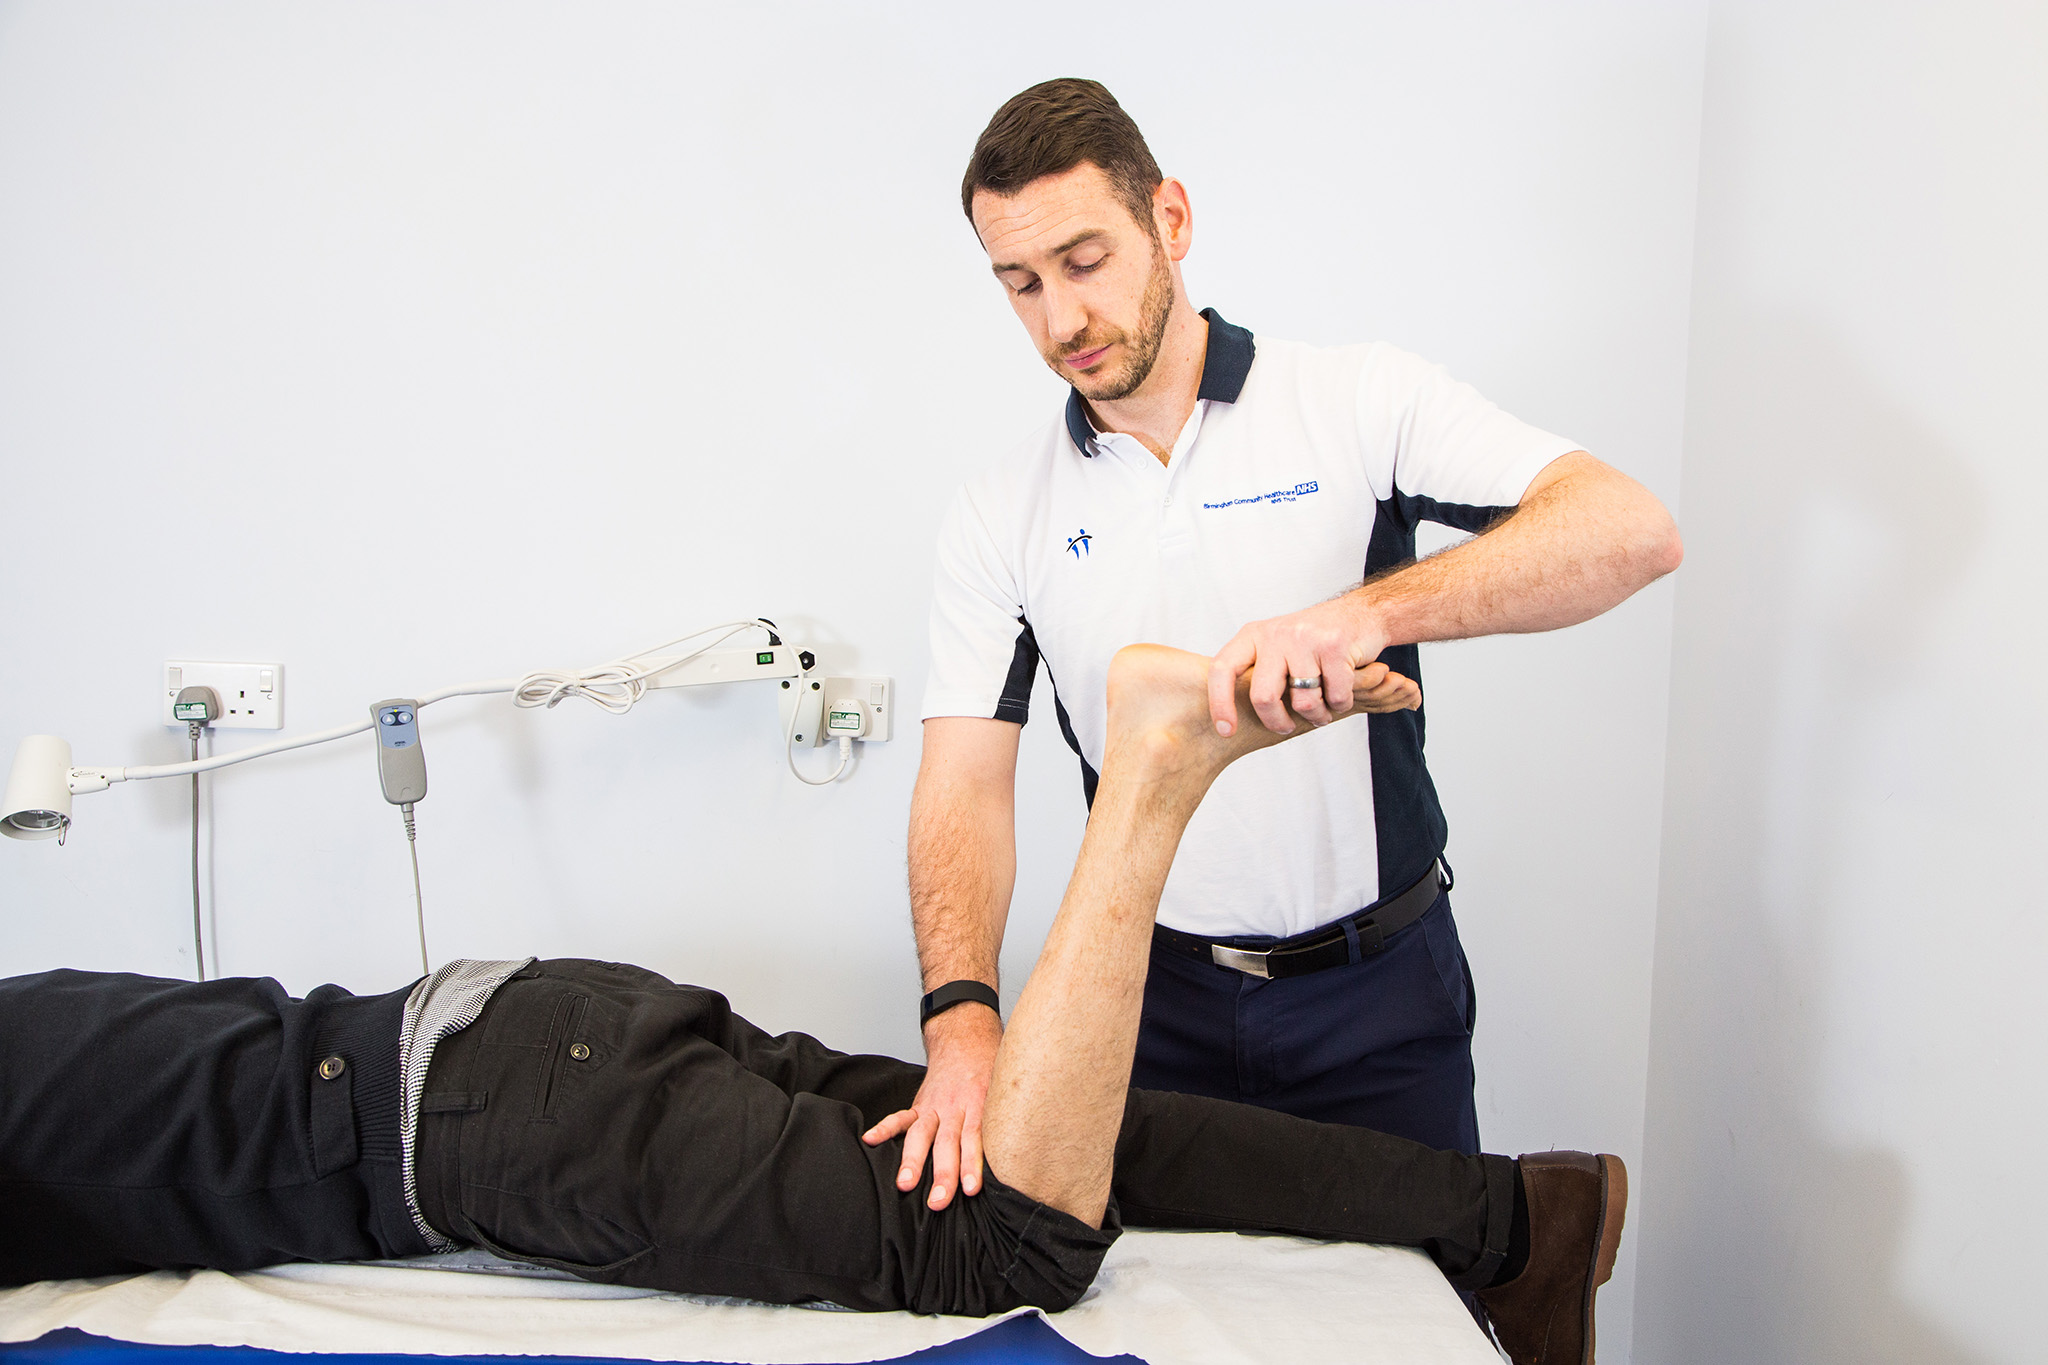 Offering patients direct access to treatment - SDSmyhealthcare's Musculoskeletal (MSK) service offers patients direct access to local treatment, from BCHC's qualified MSK Specialists and Physiotherapists.